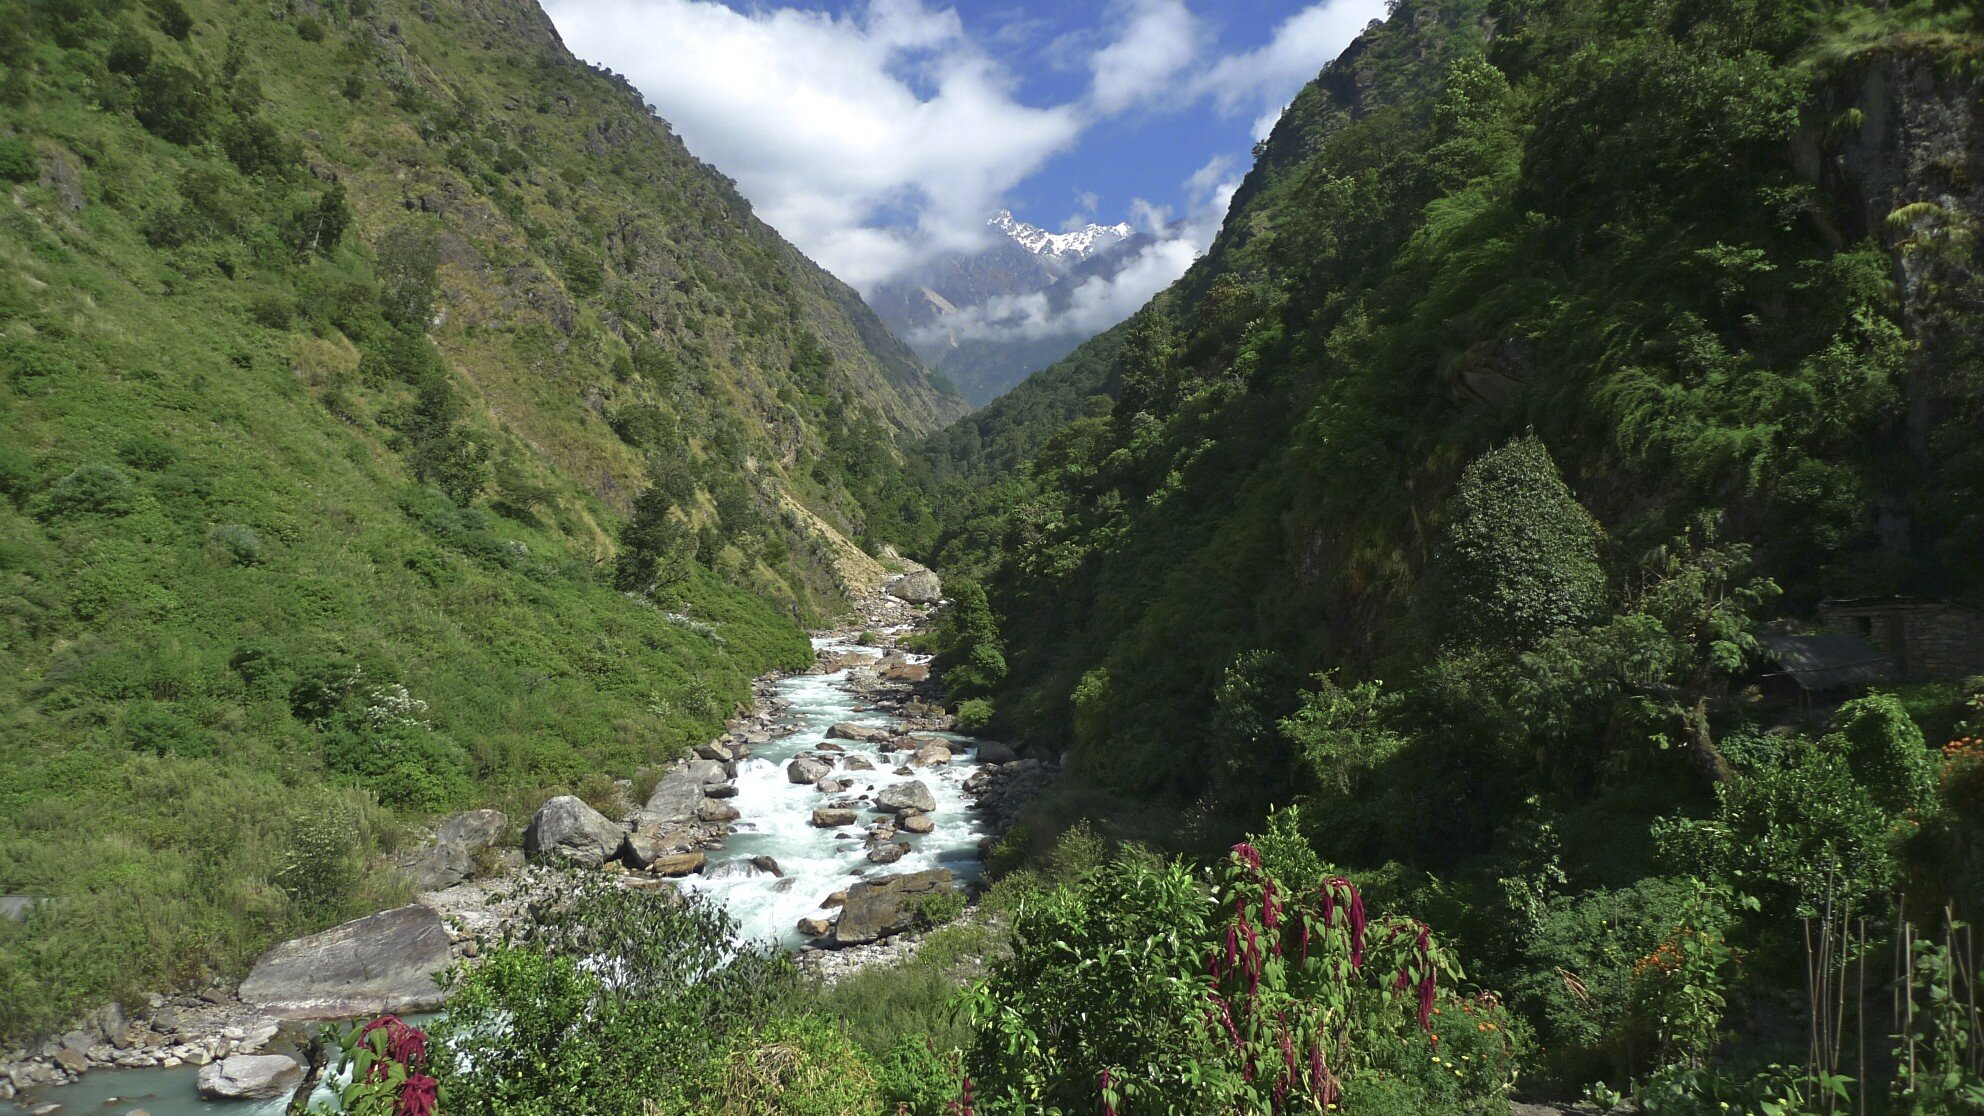 The Langtang Valley